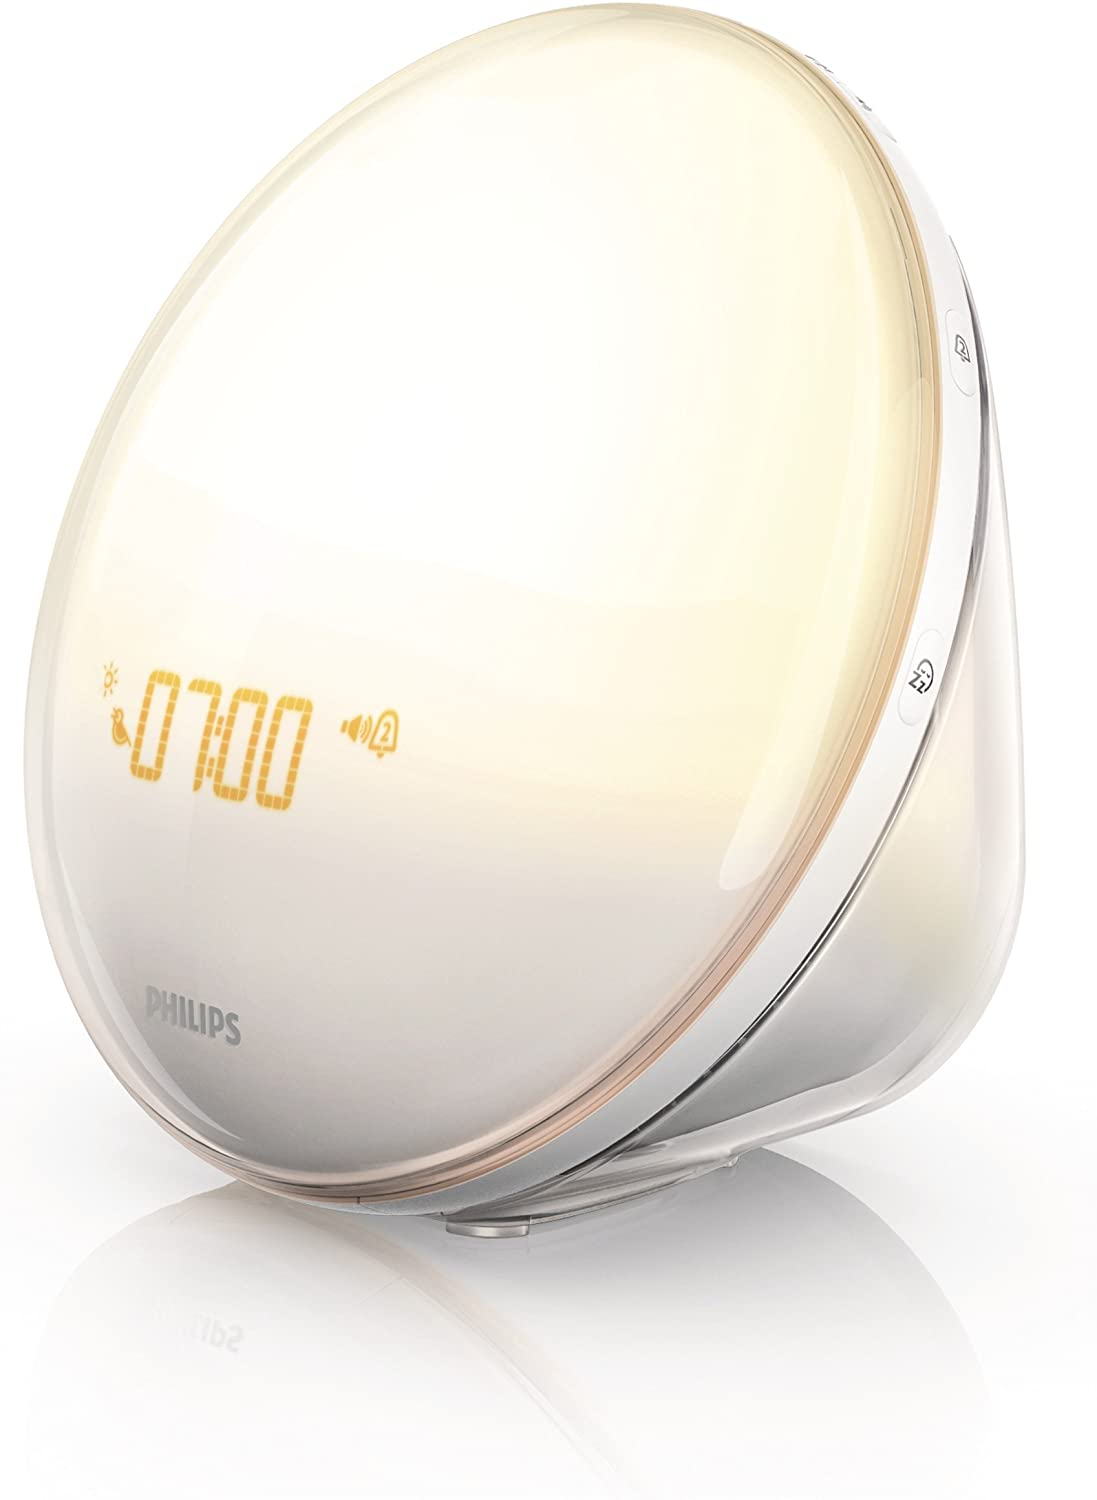 Philips Smartsleep Wake Up Light